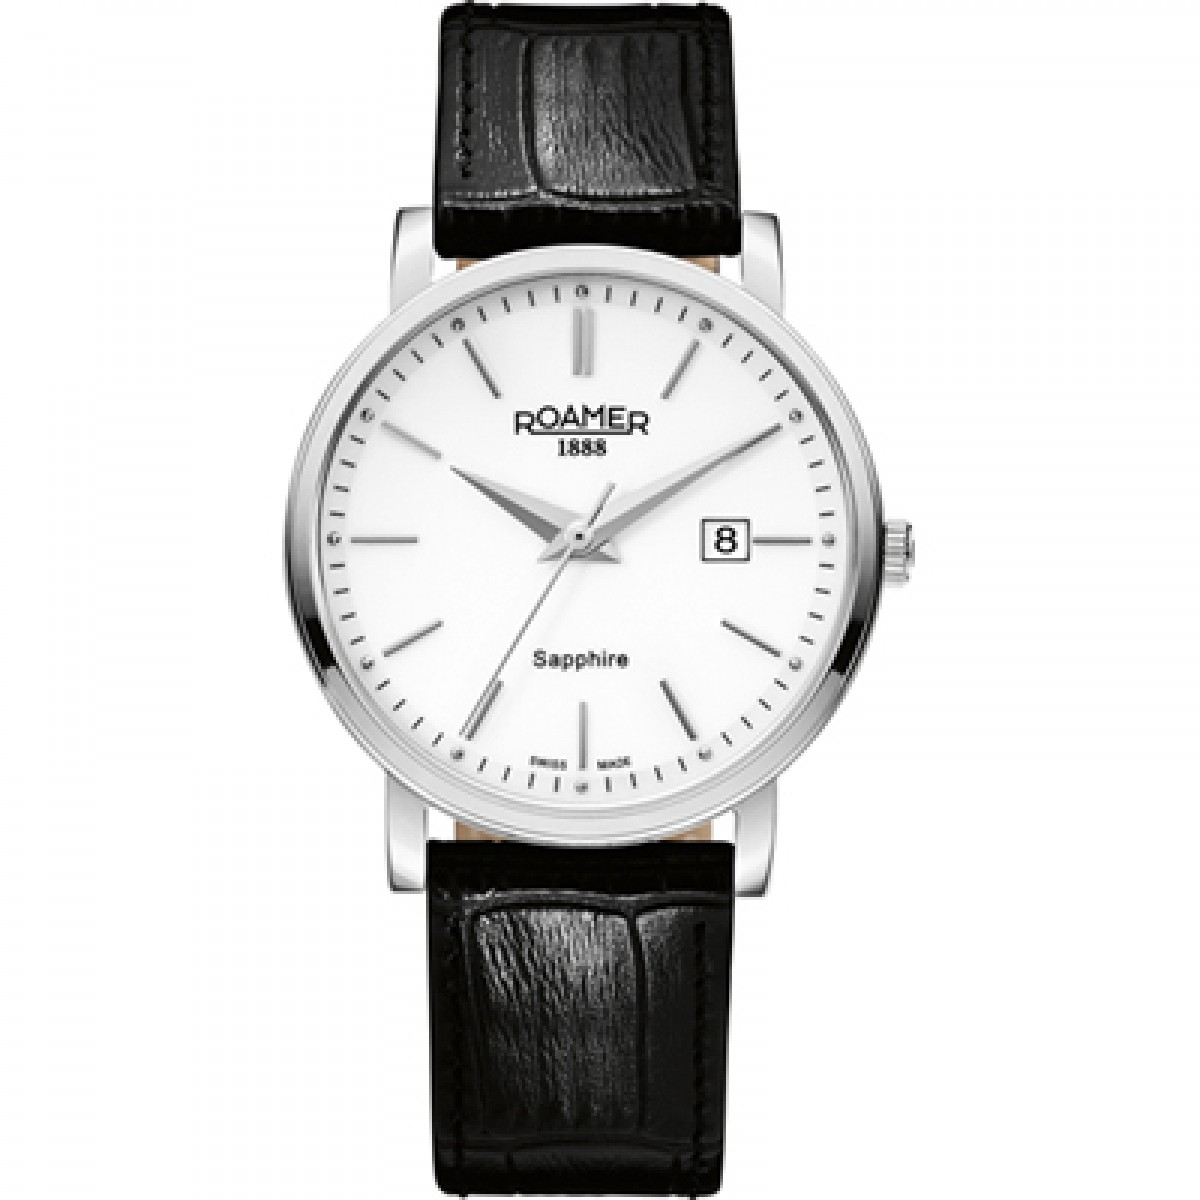 Roamer of Switzerland Classic Line Men's Quartz Watch with White Dial Analogue Display and Black Leather Strap 709856 41 25 07